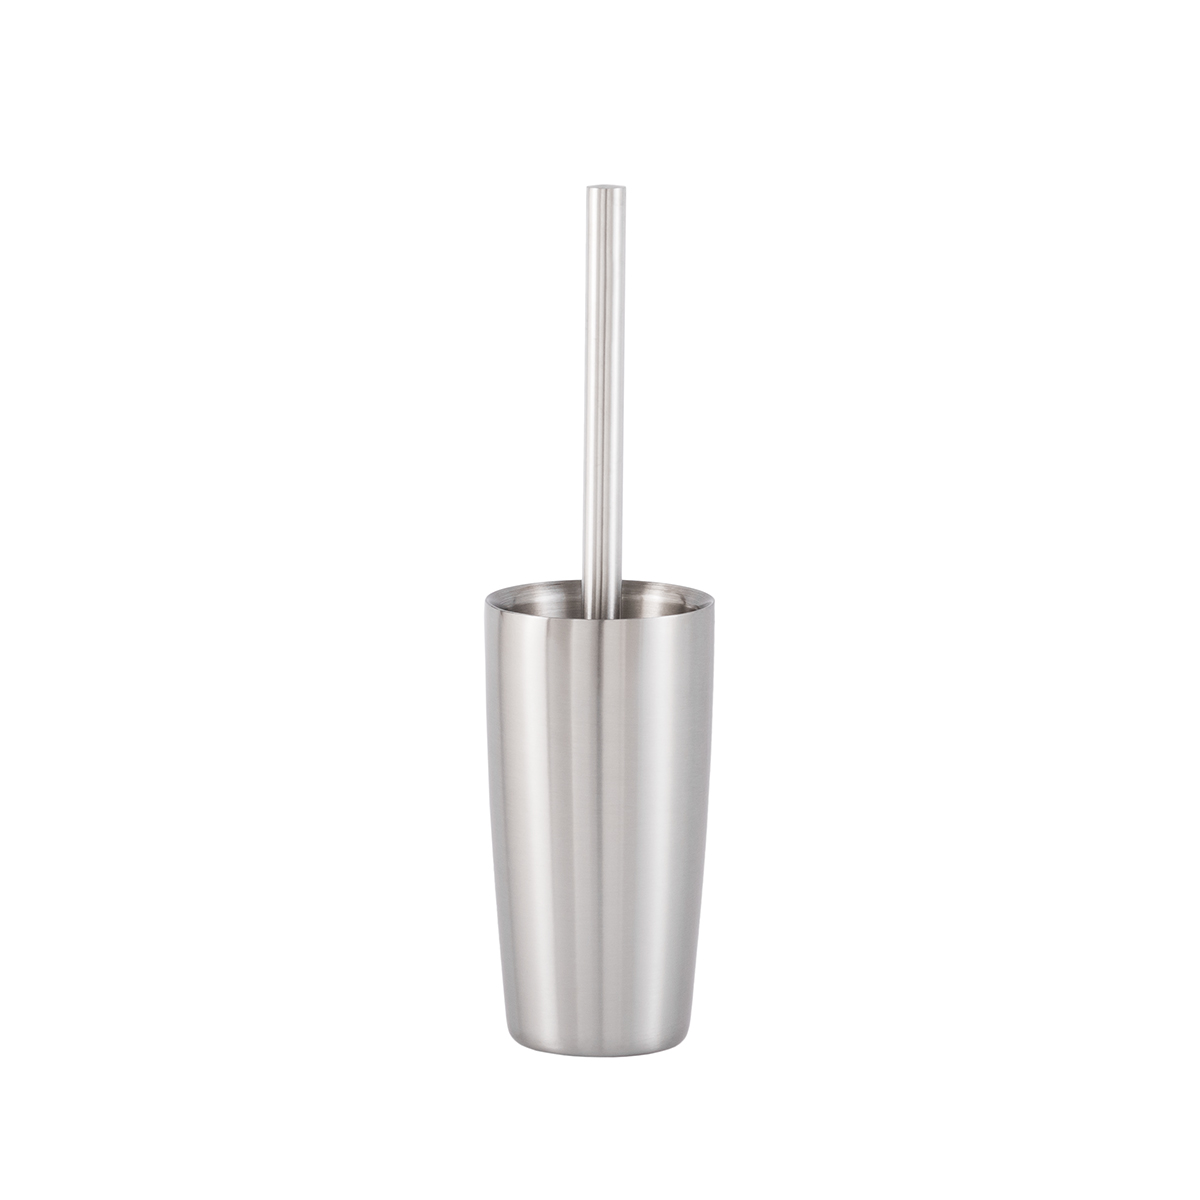 Rust Proof Stainless Steel Toilet Brush